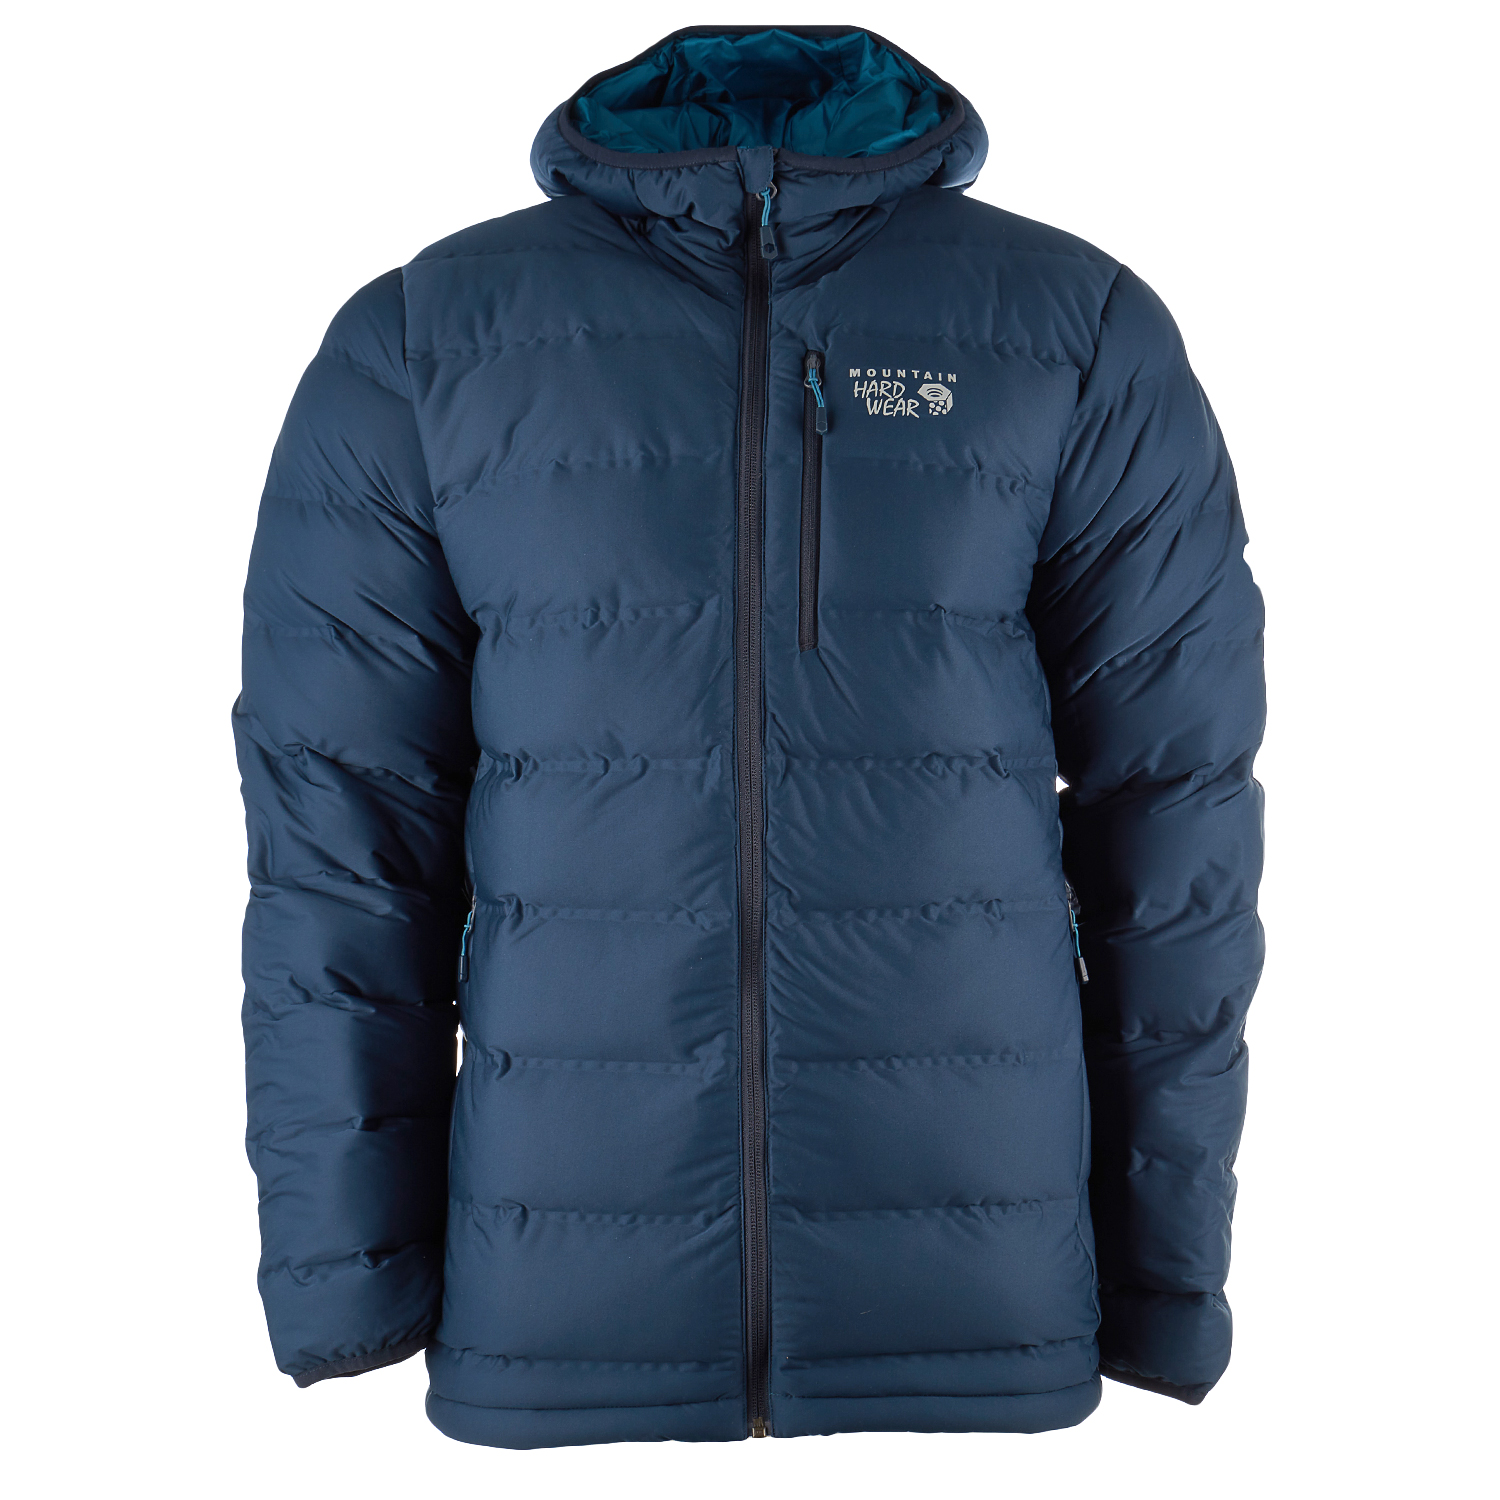 Mountain Hardwear StretchDown Plus Insulated Hooded Down Jacket Coat - Mens